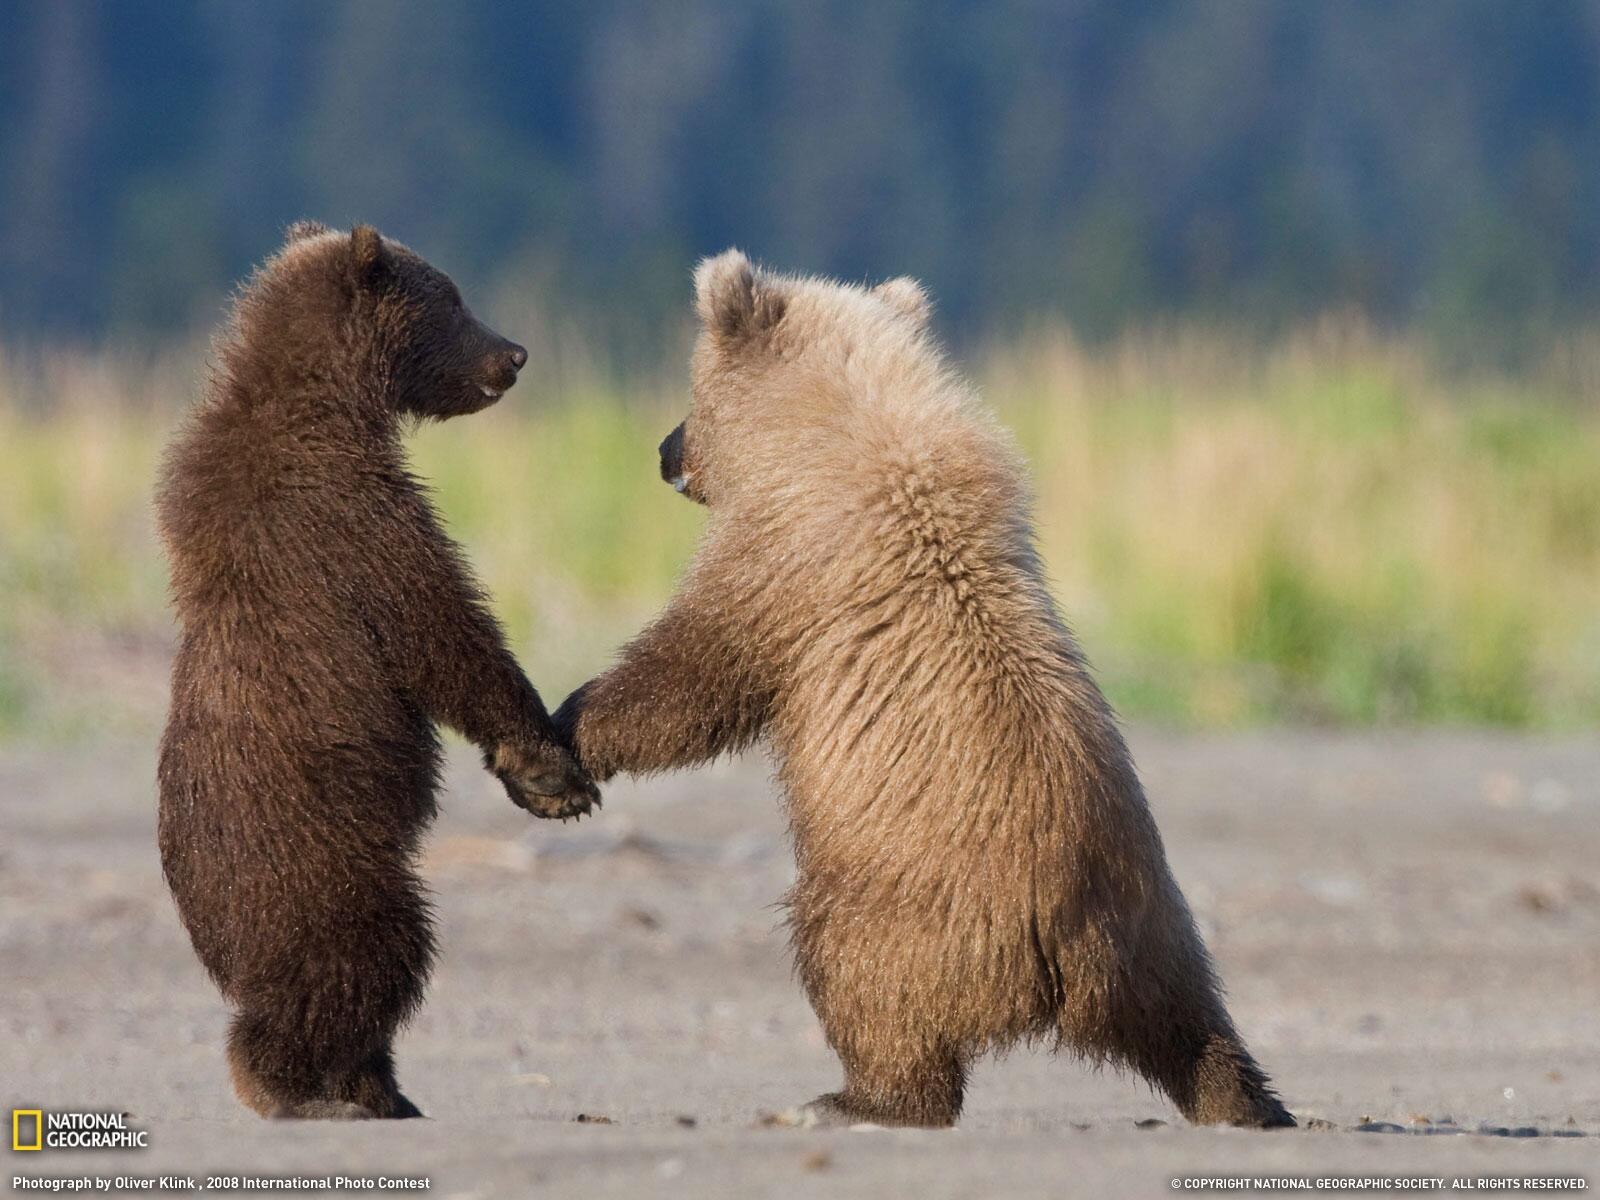 Two Grizzly Bear Cubs Sharing a Moment http://t.co/BcIM7QVxKR